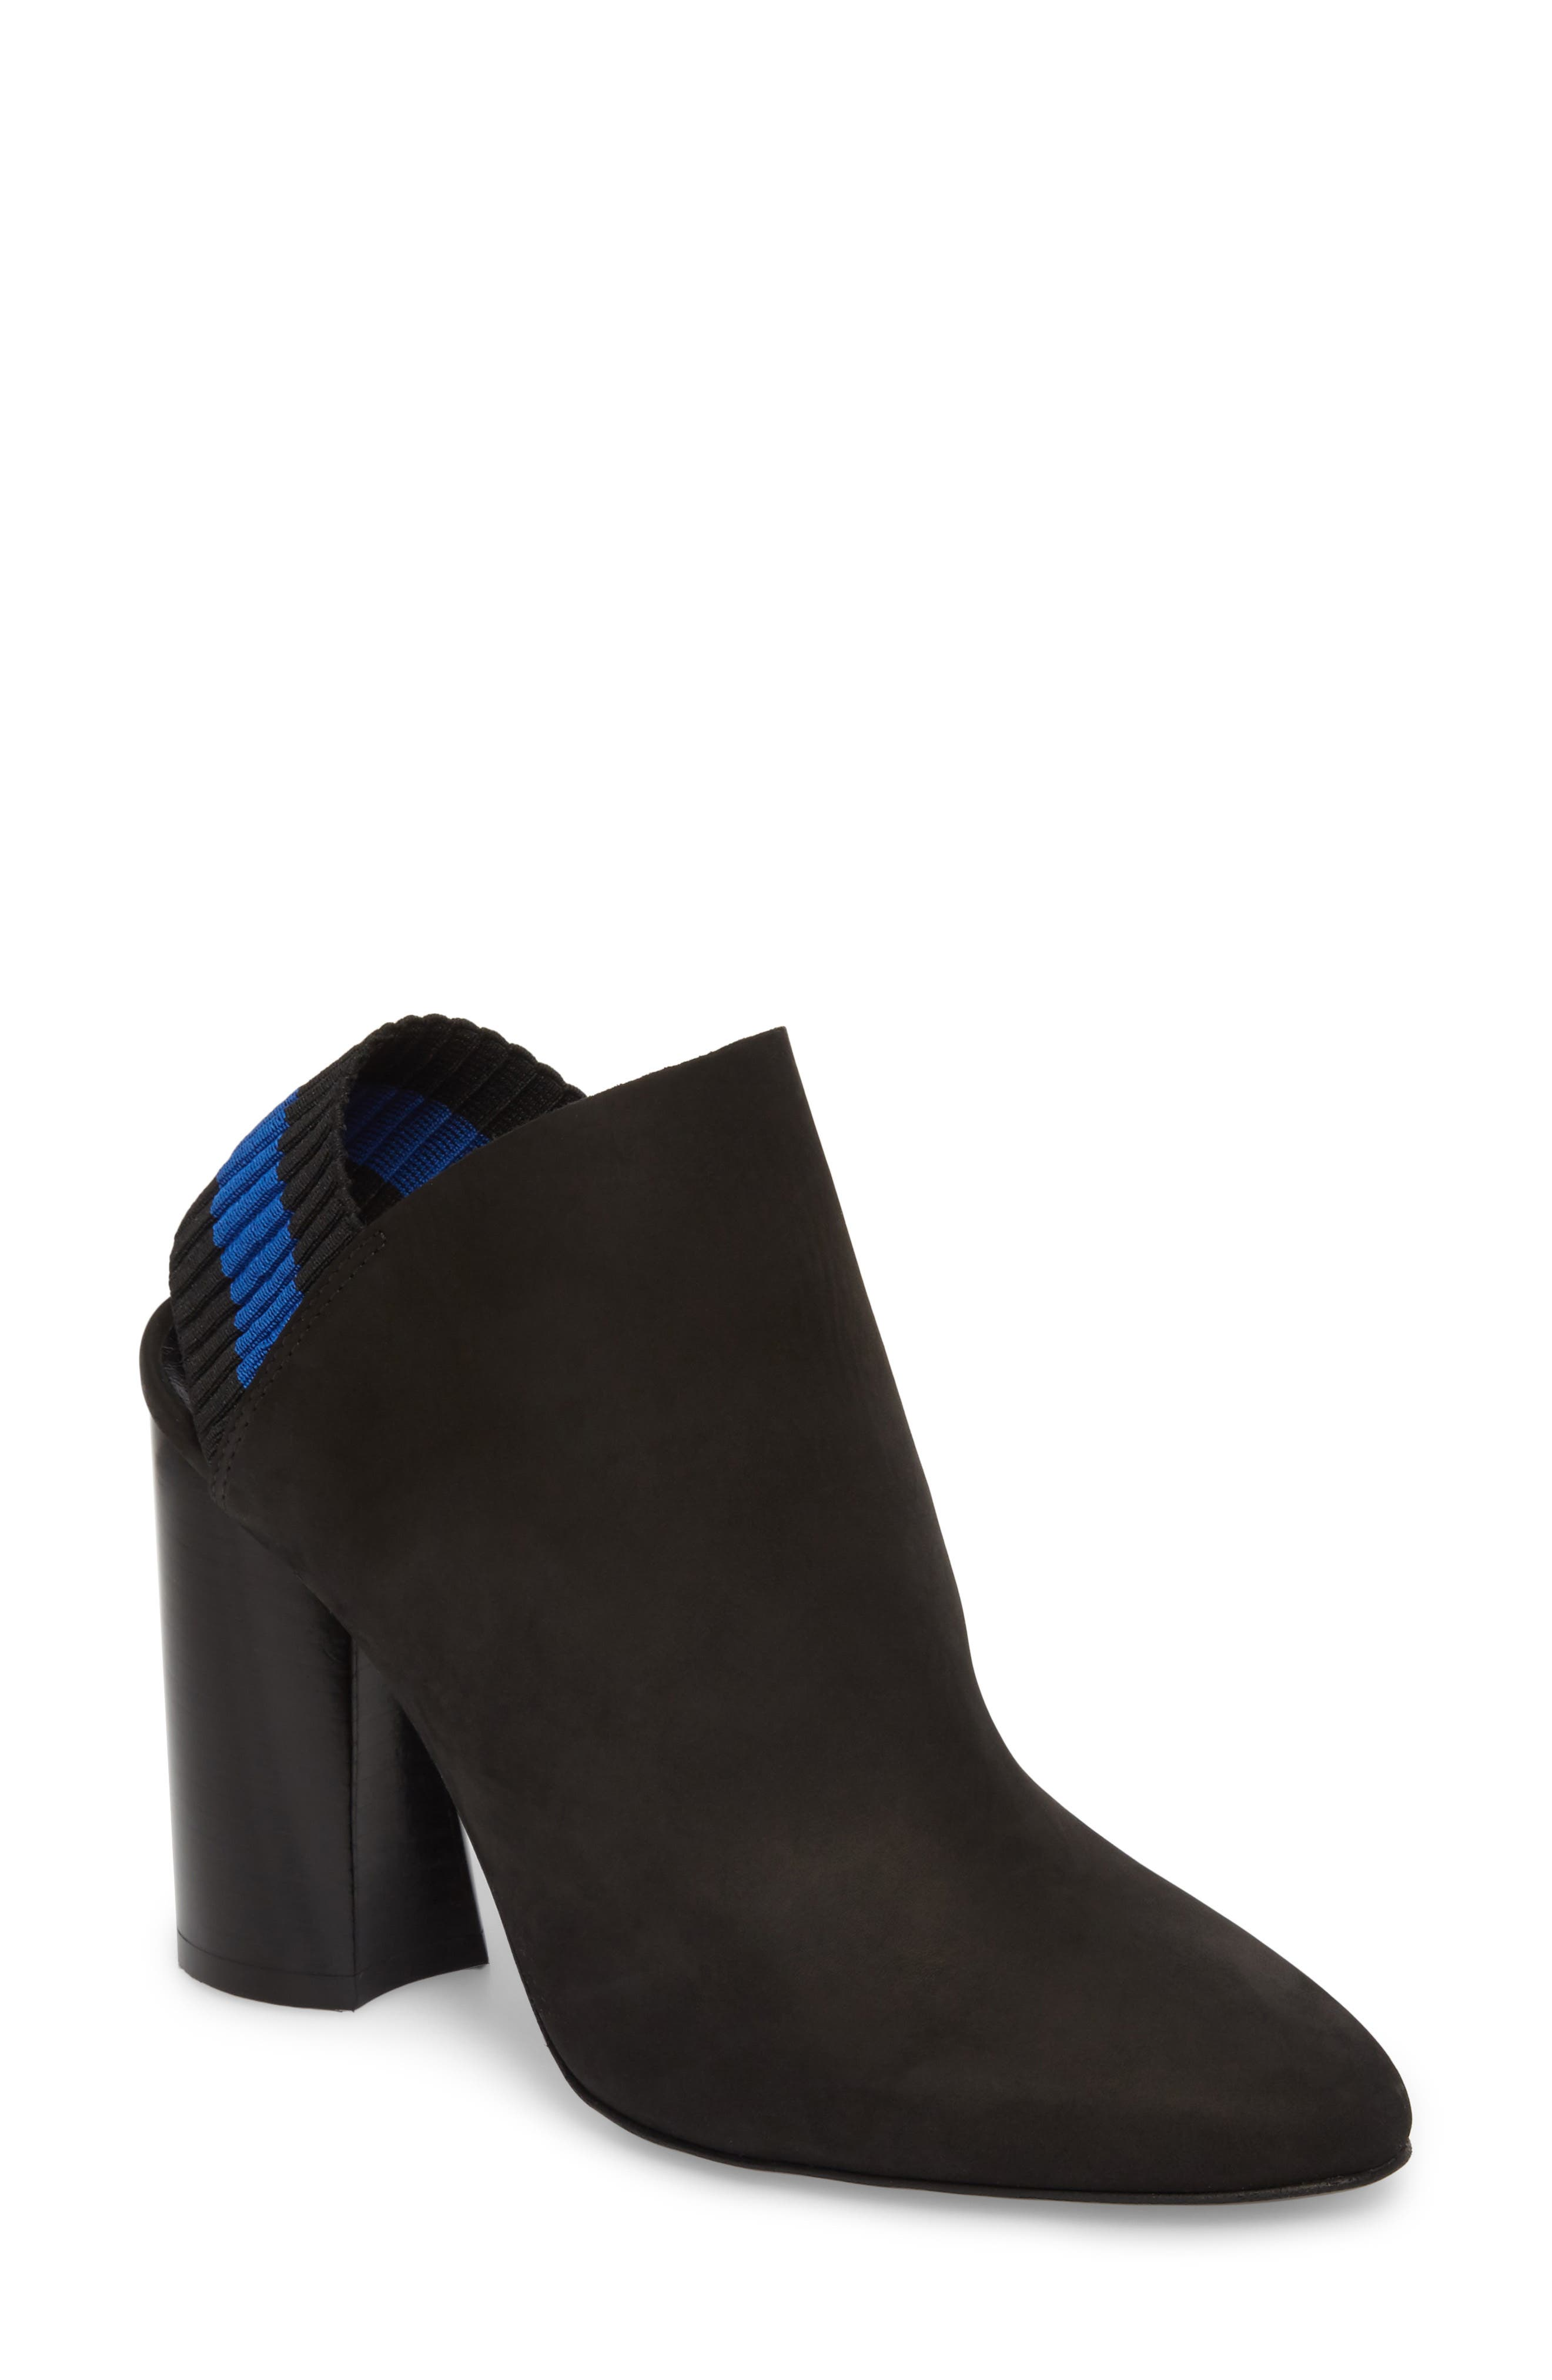 Alternate Image 1 Selected - 3.1 Phillip Lim Drum Slingback Bootie (Women)